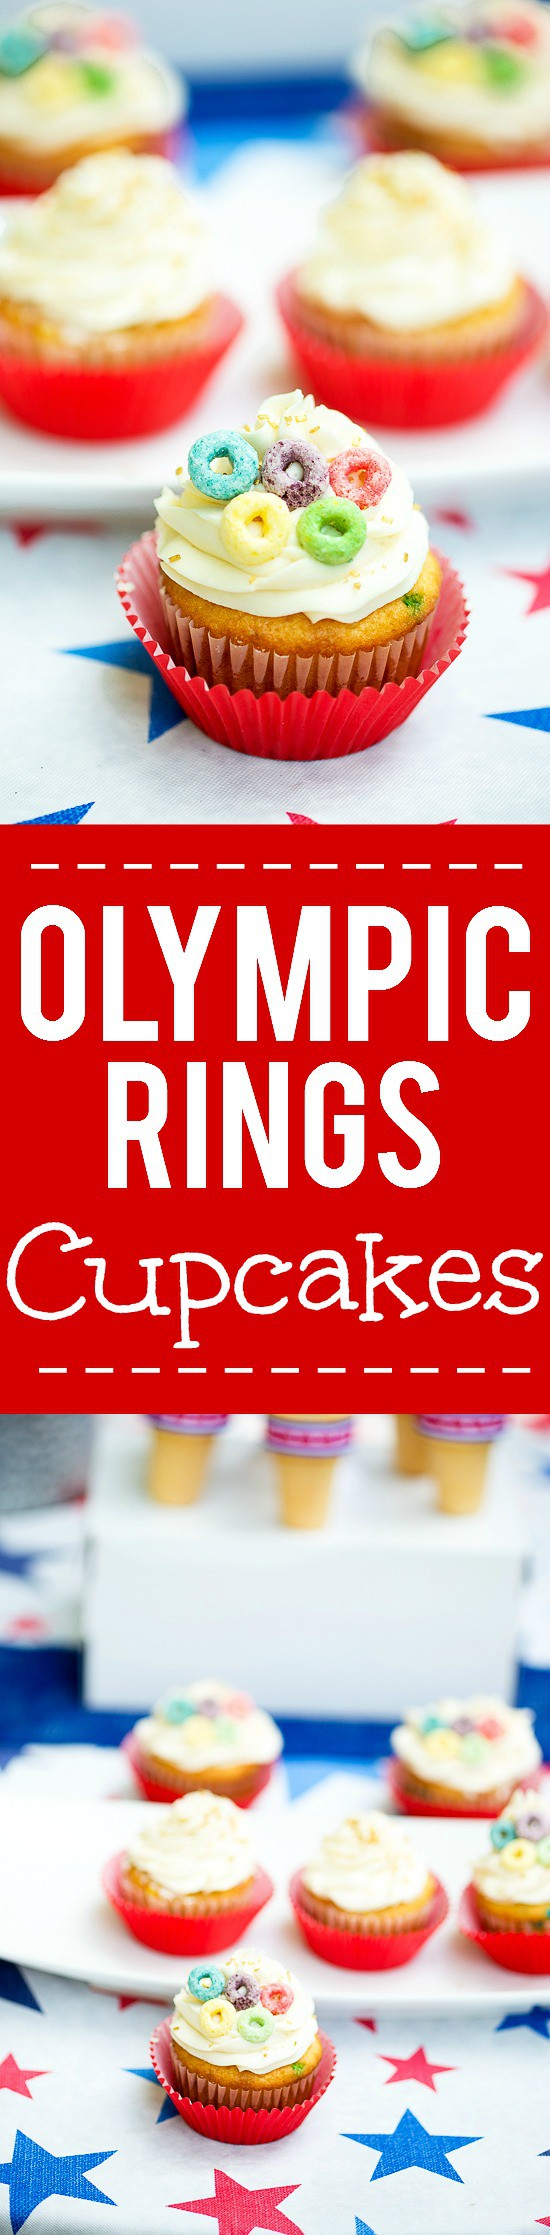 Olympics Party Ideas - Get ready to cheer Team USA on to go for the gold with these fabulous and fun Olympics party ideas to host an amazing Olympics party celebration, including cute Olympics party food and patriotic Team USA party decorations.